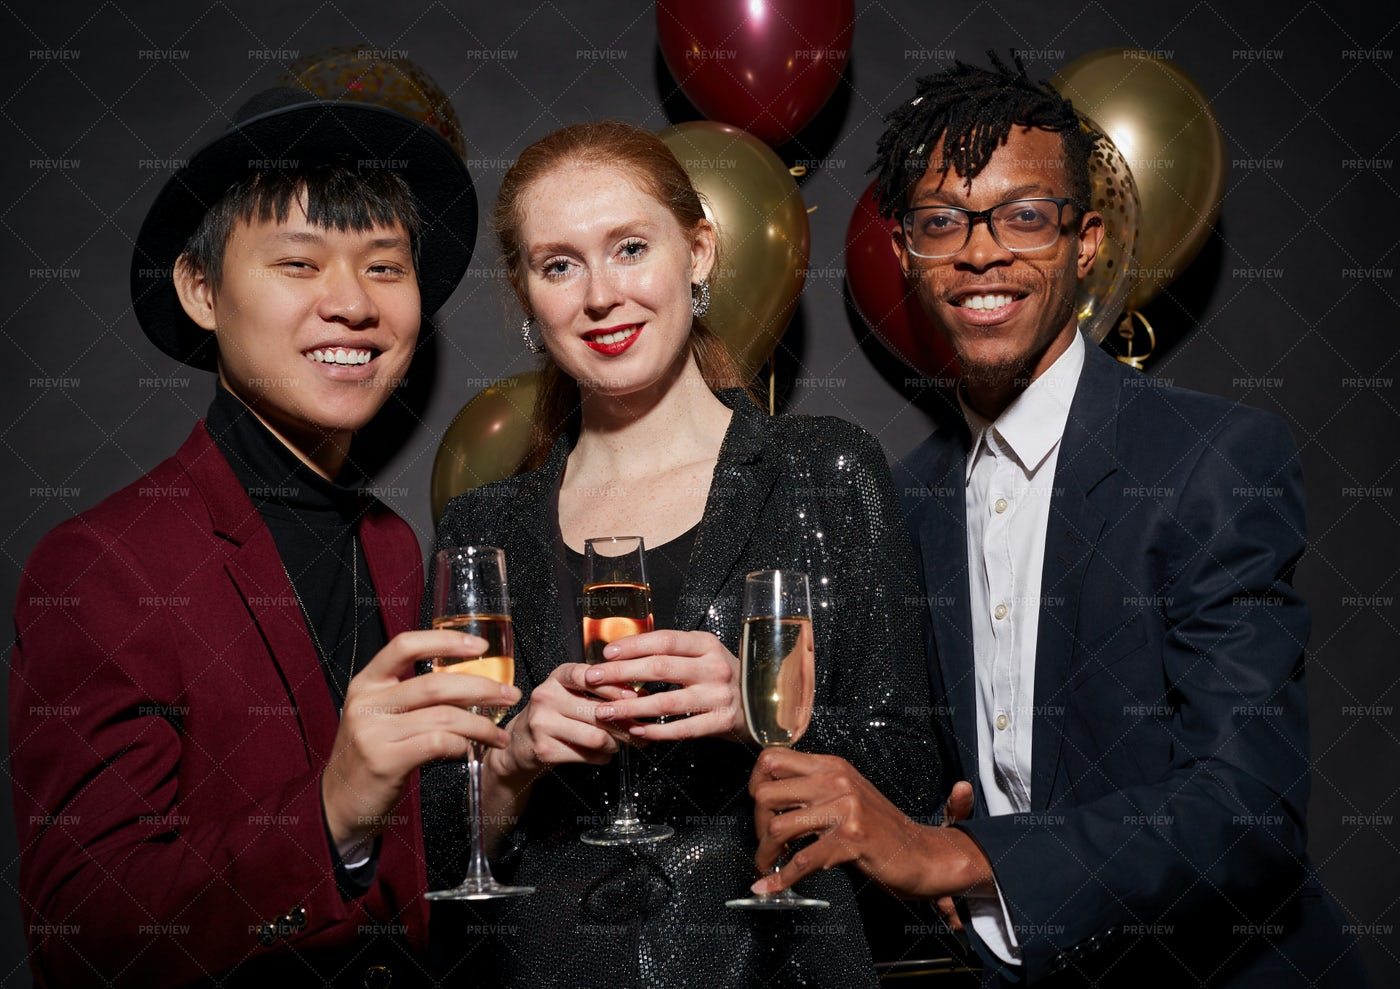 Friends Posing For Party Shot: Stock Photos